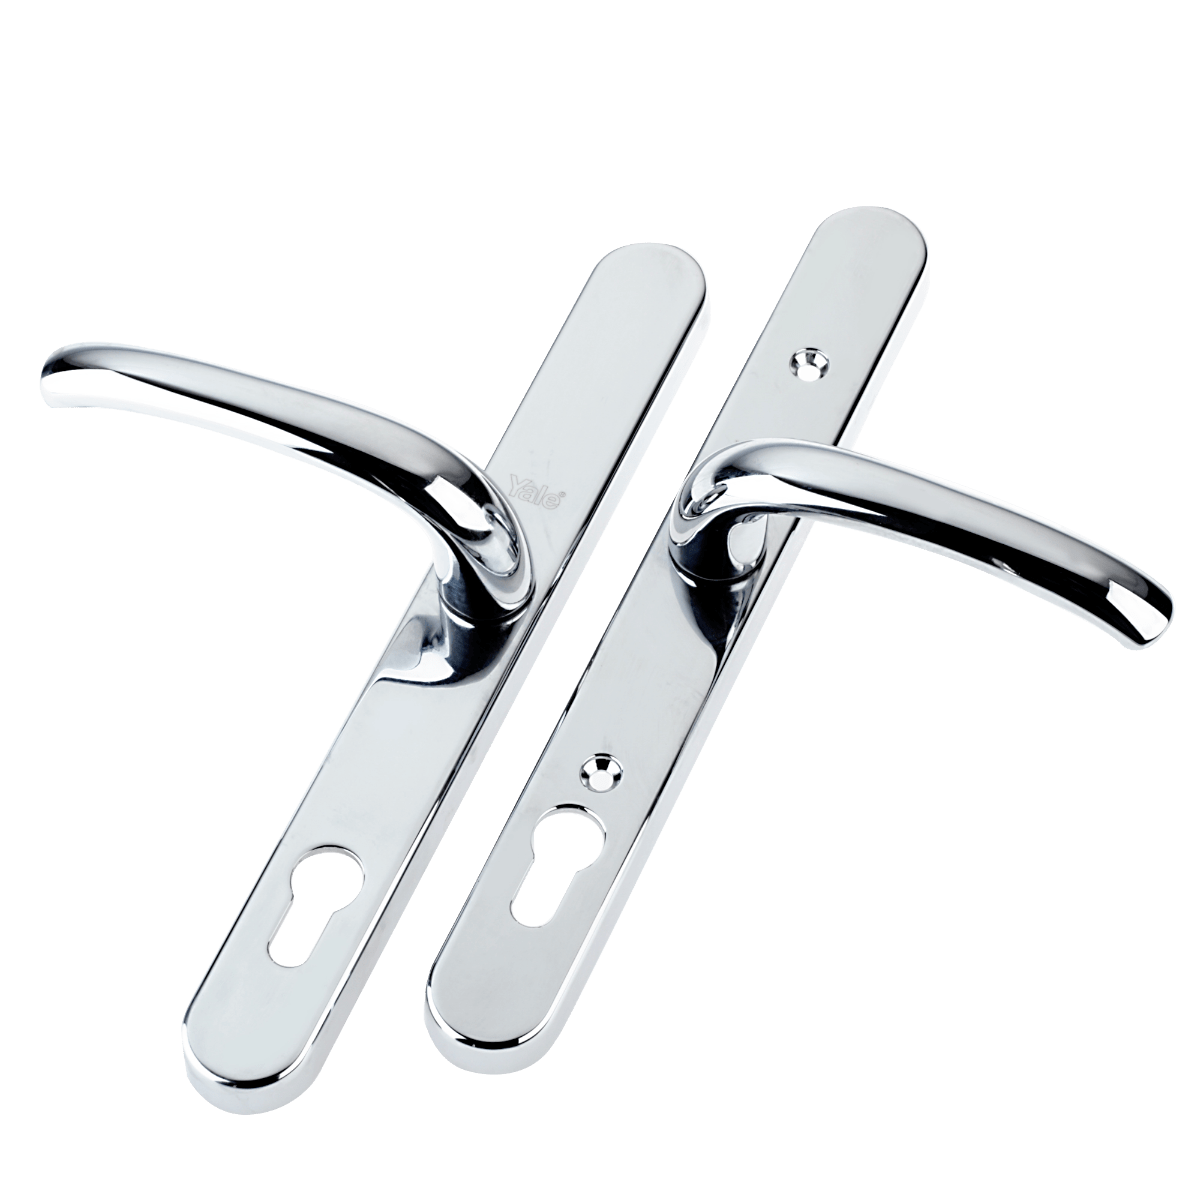 Yale-Universal-Replacement-Door-Handle-Adjustable-Fixing-Points-Chrome